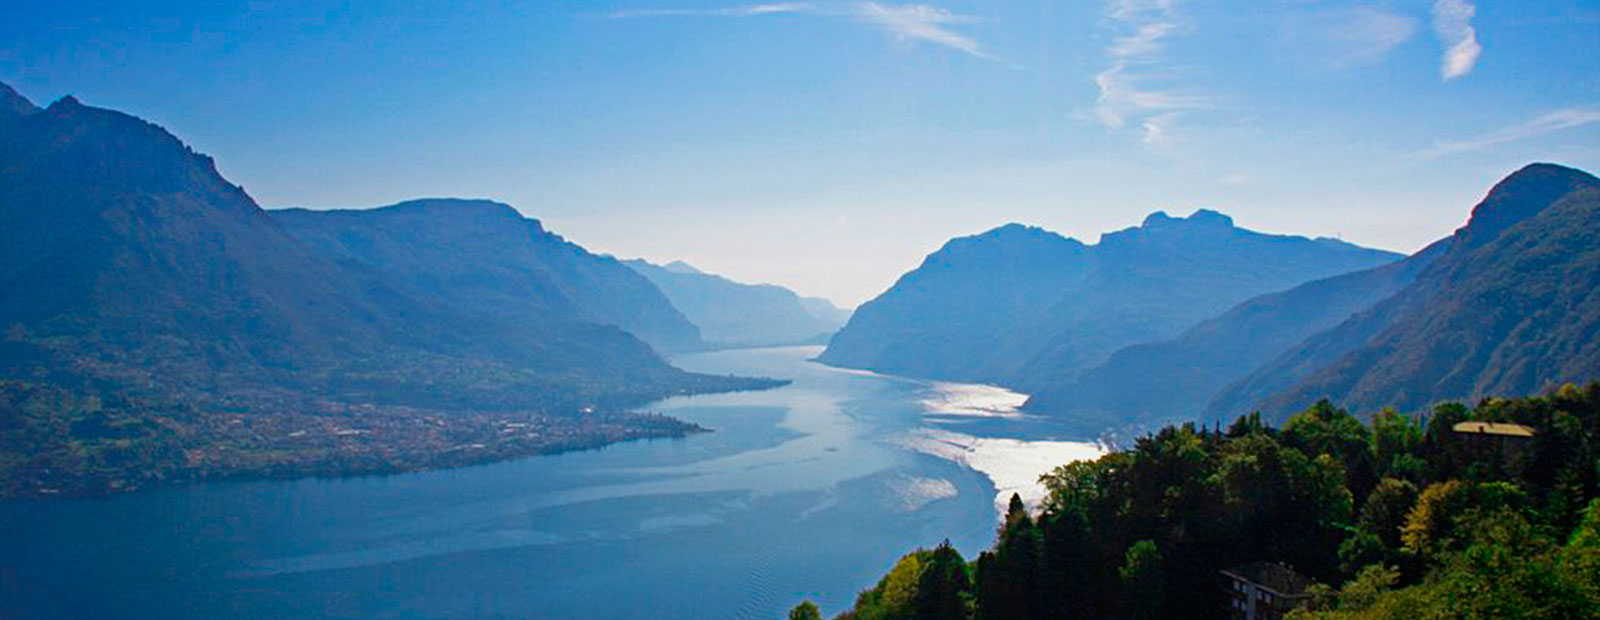 Luxurious holiday homes at Lago di Como